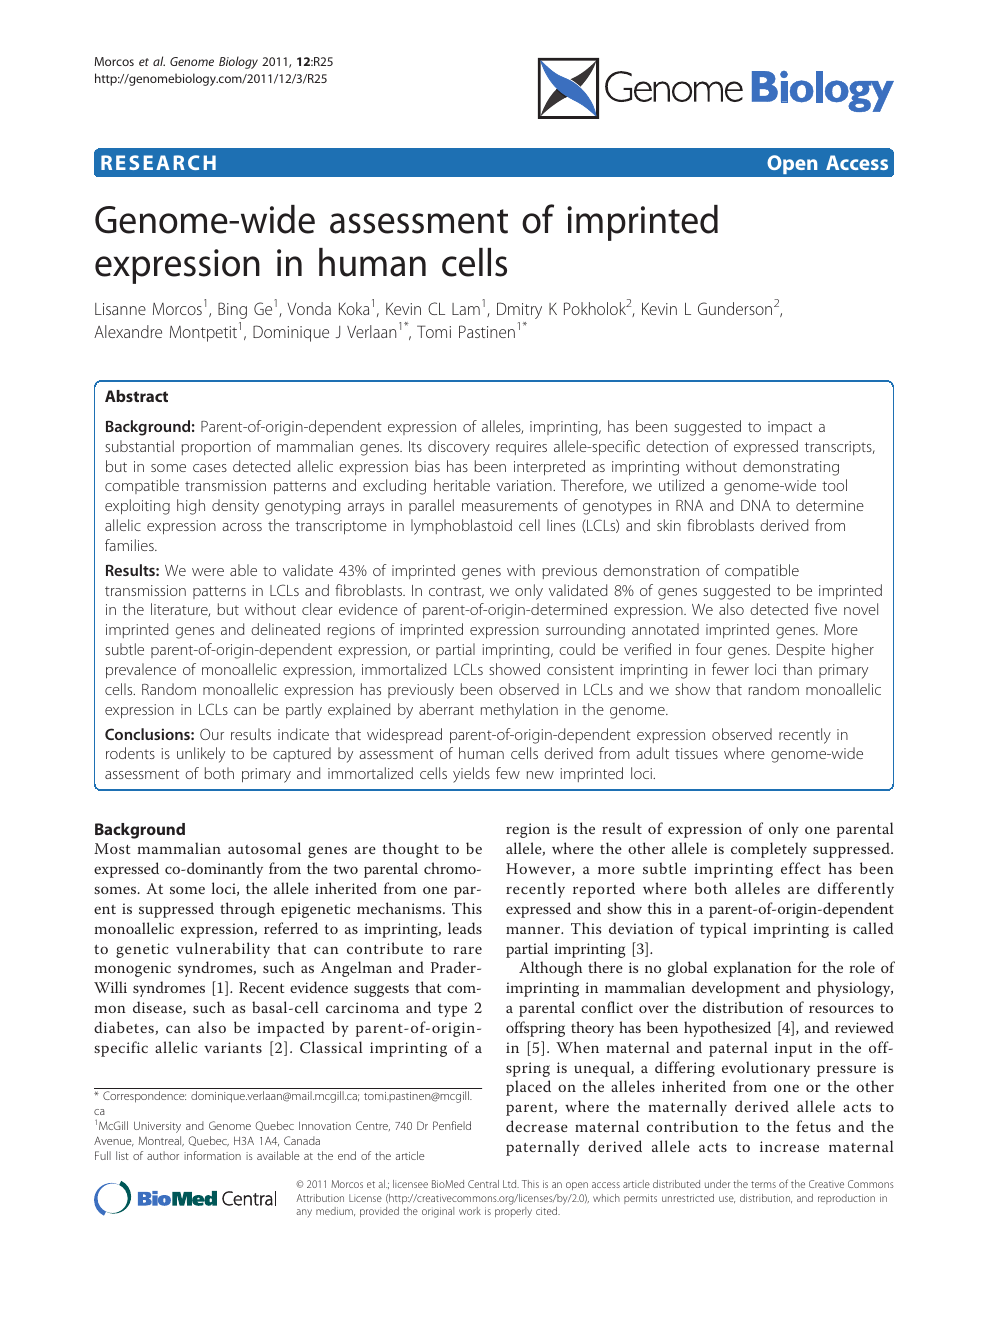 Genome-wide assessment of imprinted expression in human